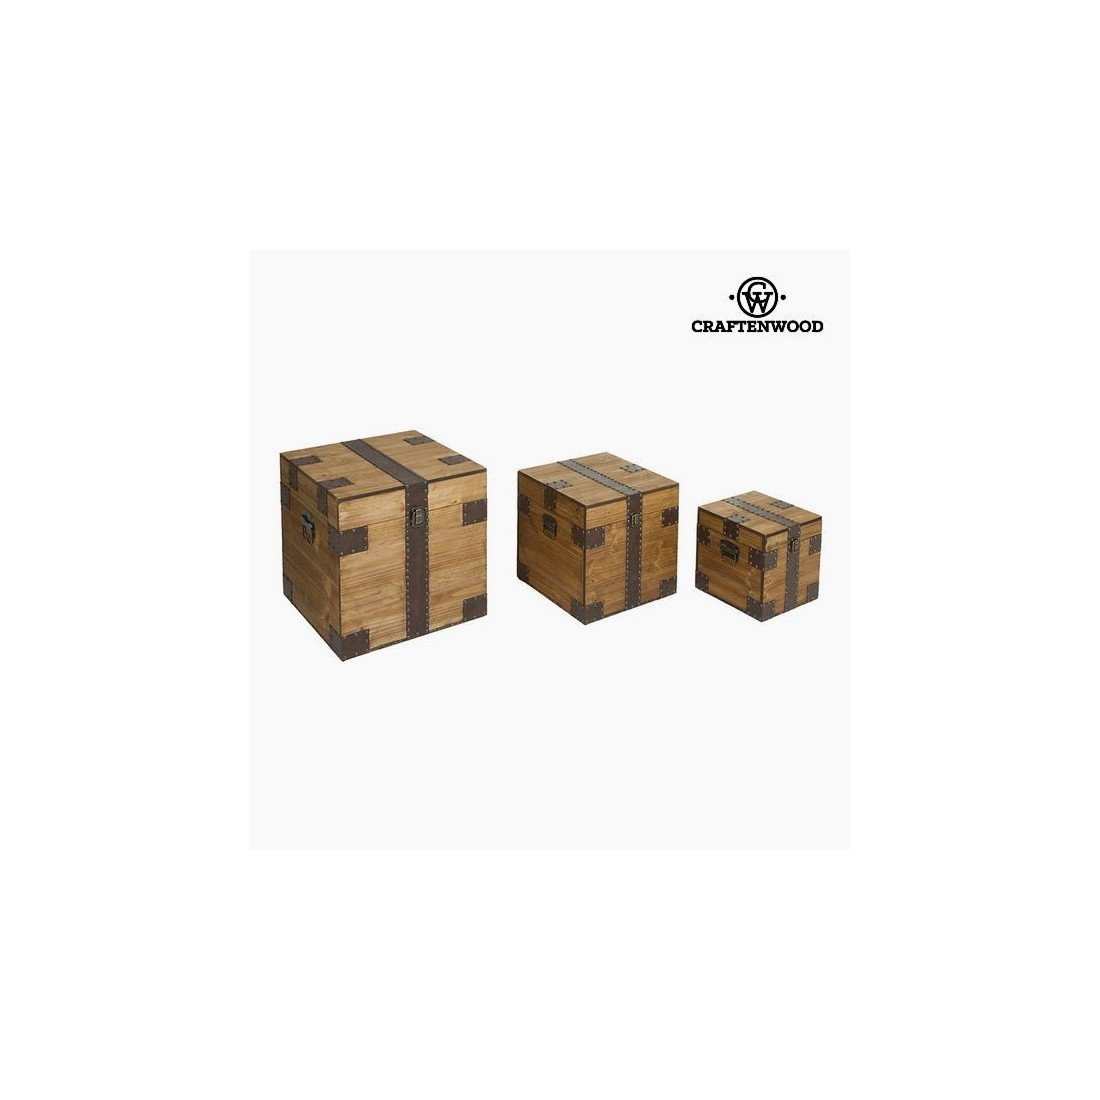 Lot de paniers (3 pcs) Mdf (40 x 40 x 40 cm) by Craftenwood